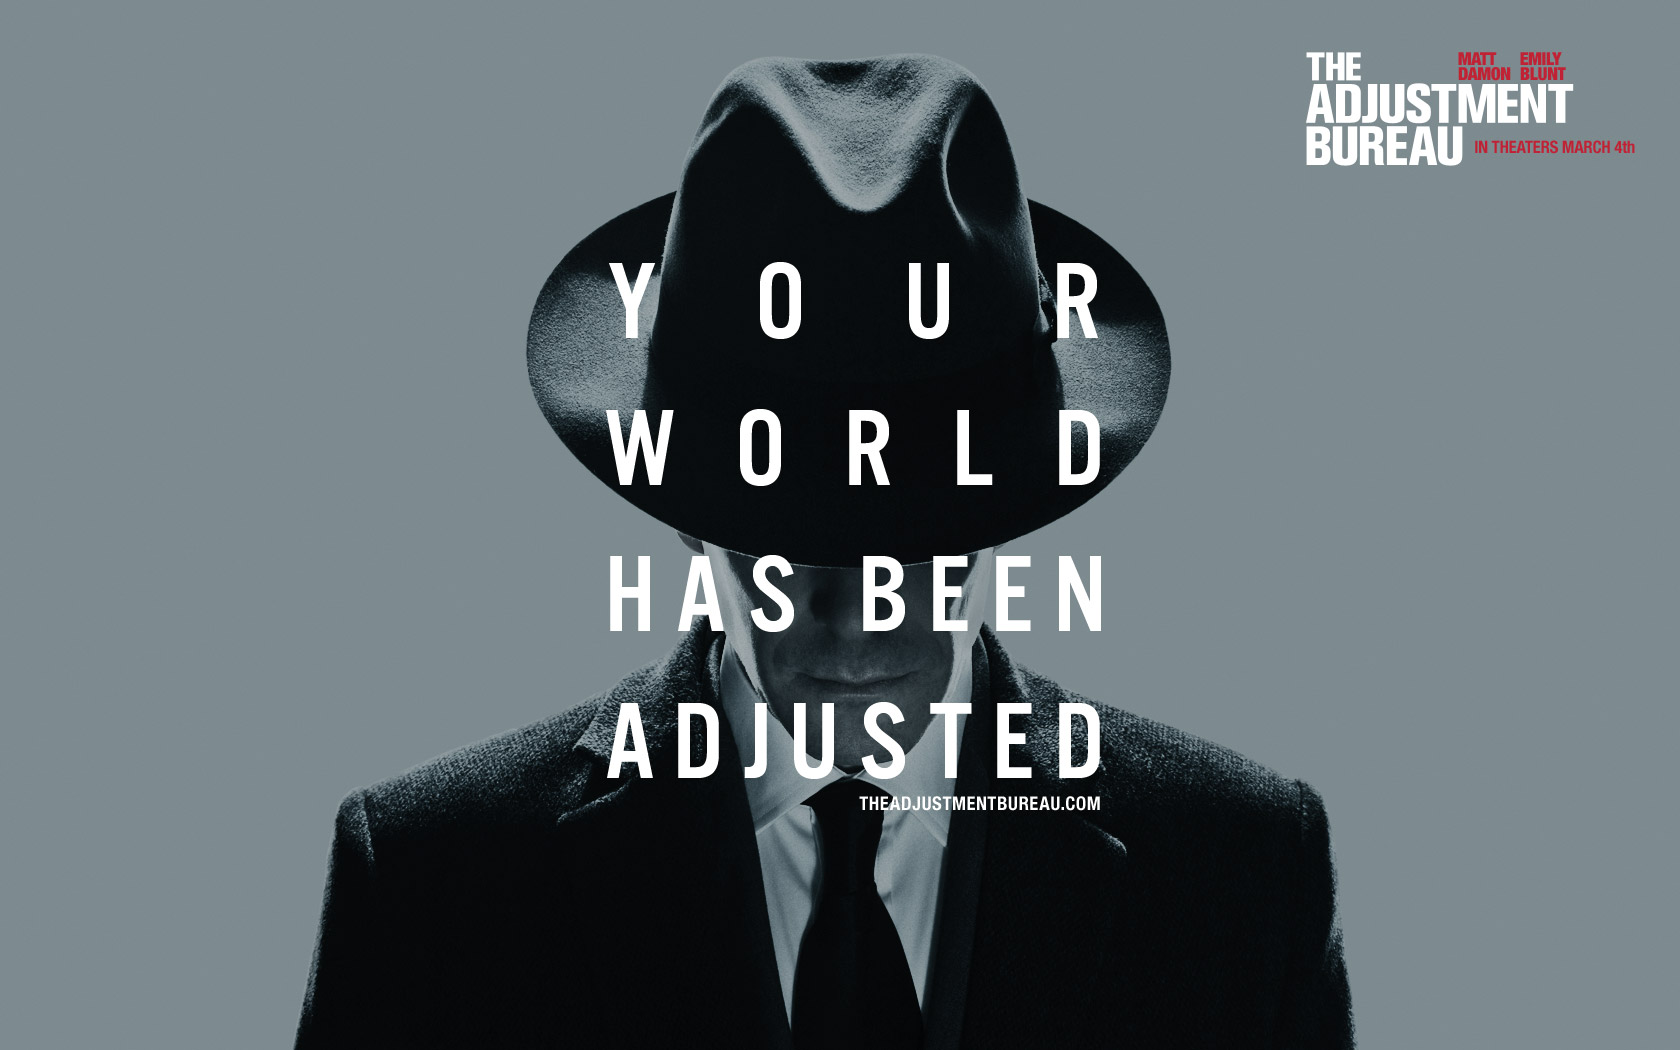 the adjustment bureau The adjustment bureau movie: trailer, clips, photos, soundtrack, news and much more.